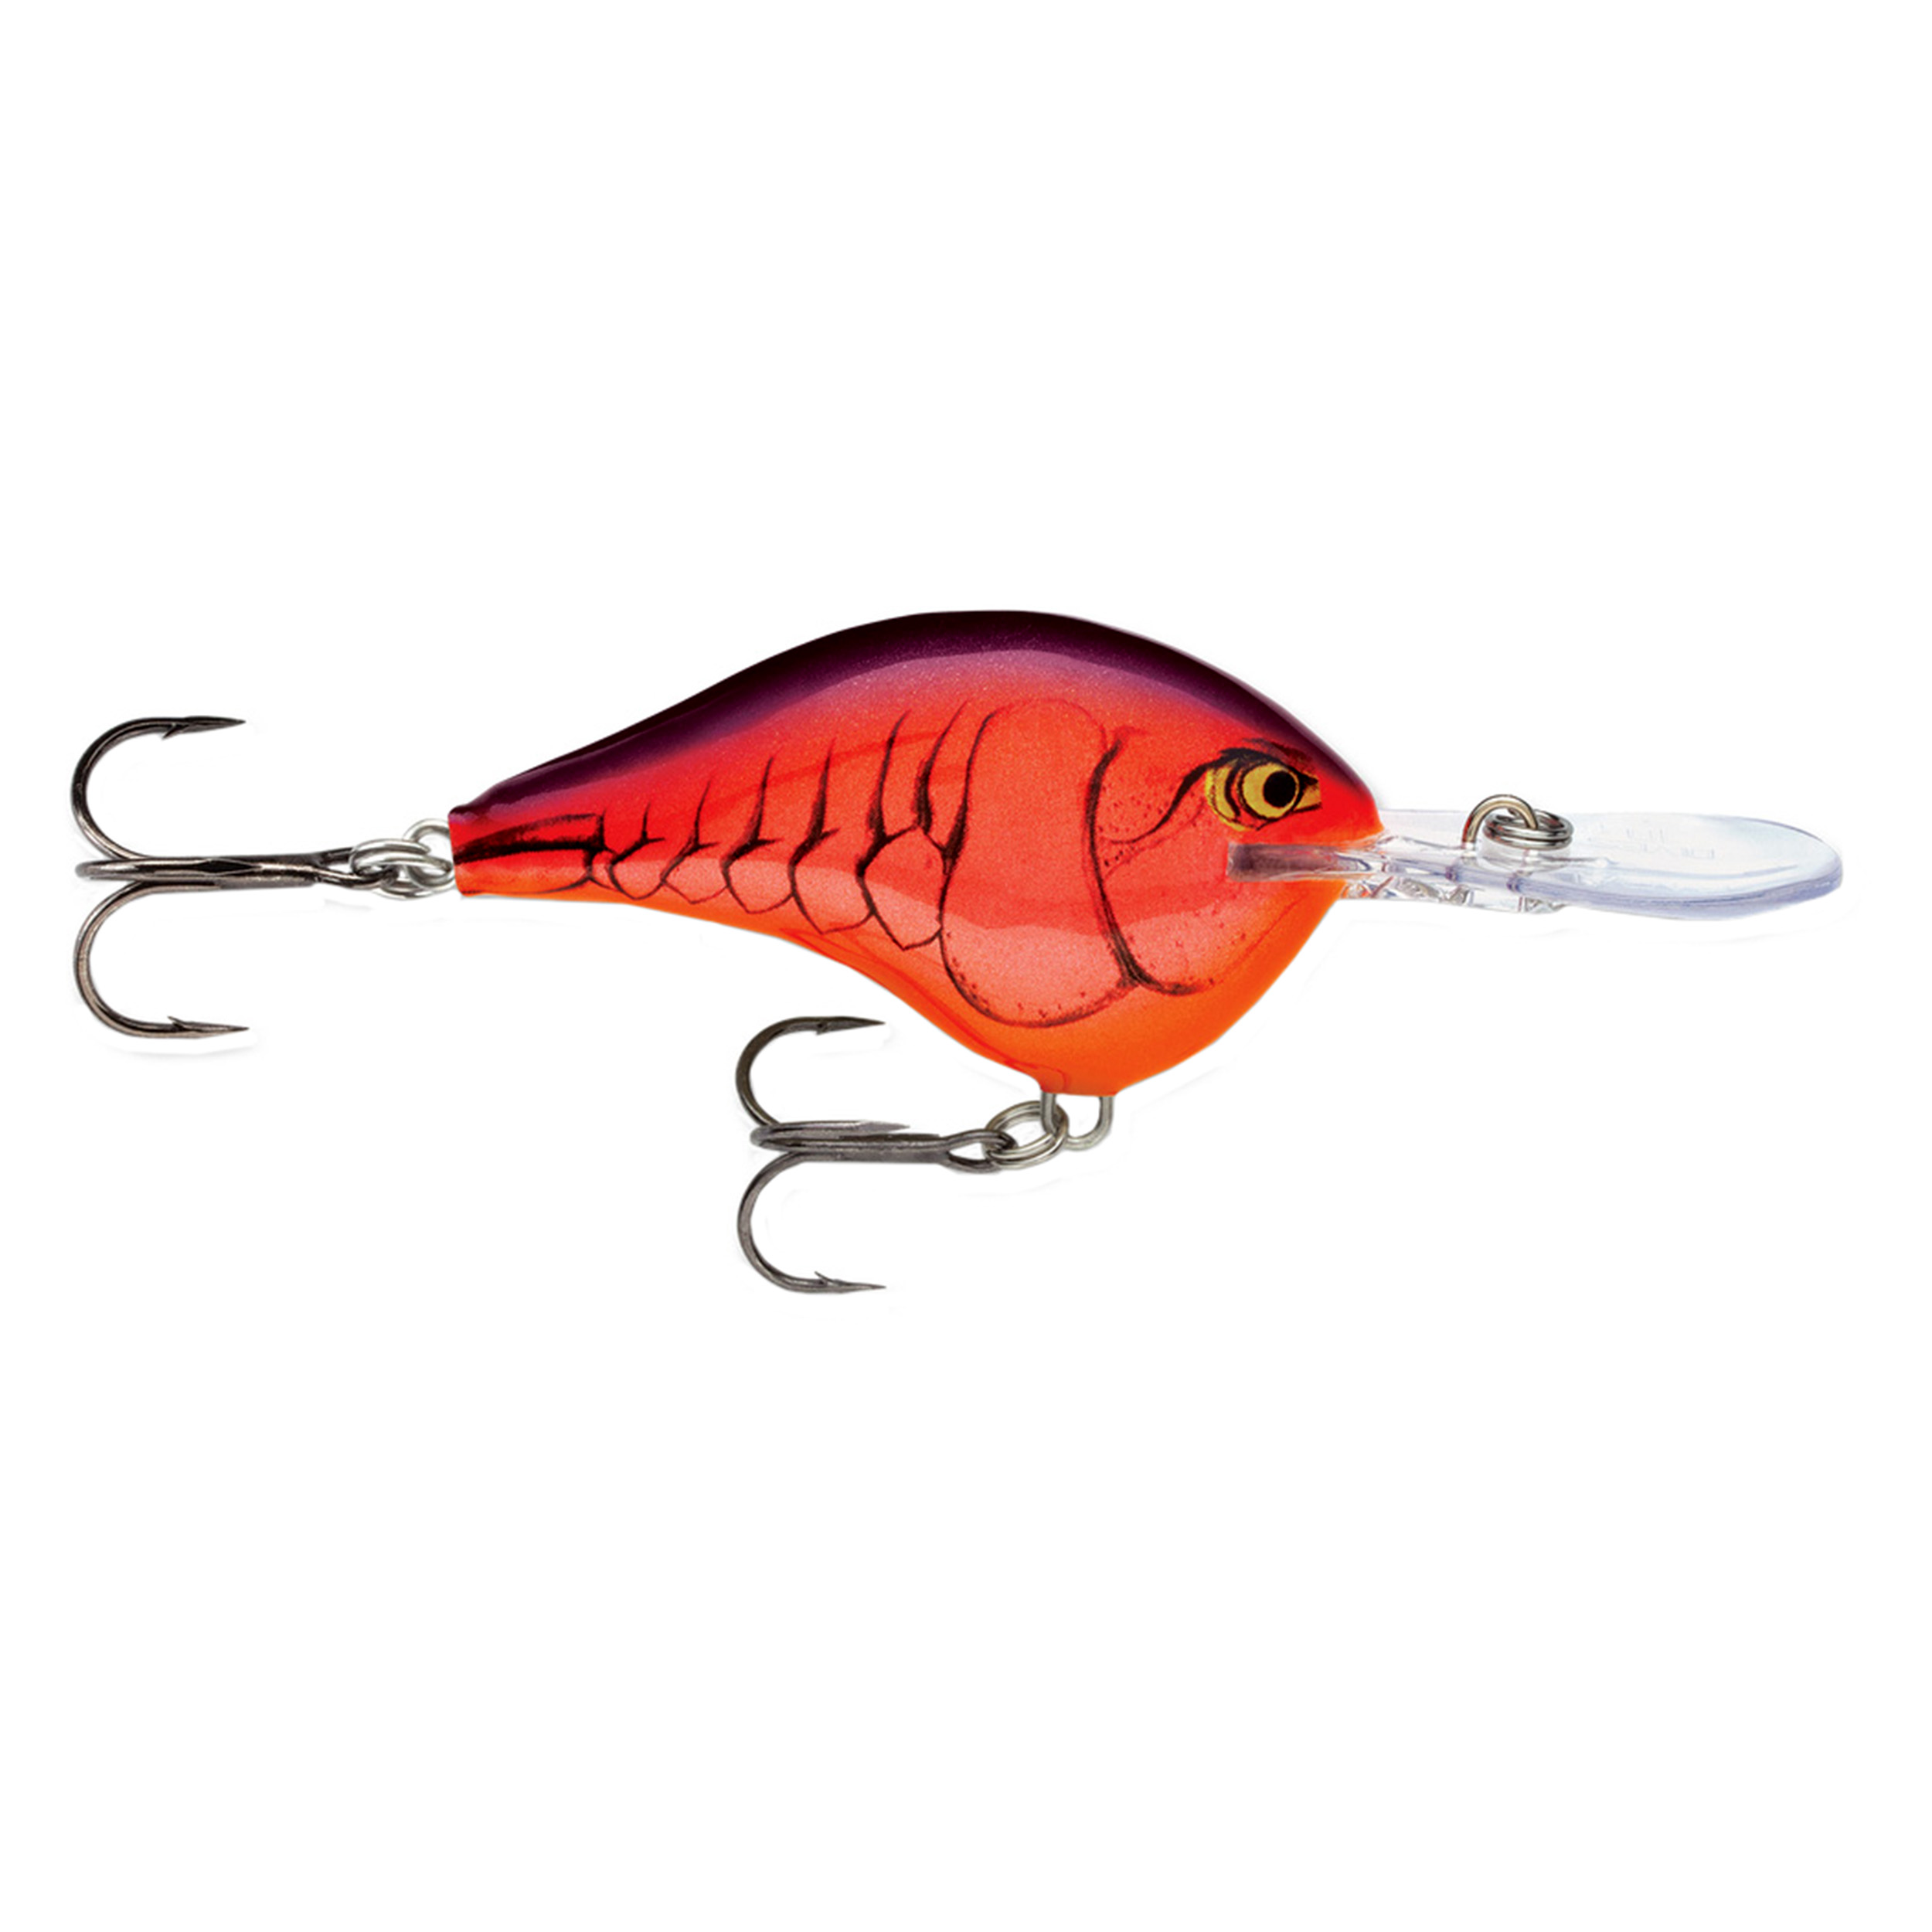 "Rapala Dives-To Series Custom Ink Lure Size 06, 2"" Length, 6' Depth, 2 Number 5 Treble Hooks, Demon, Per 1 by Rapala"